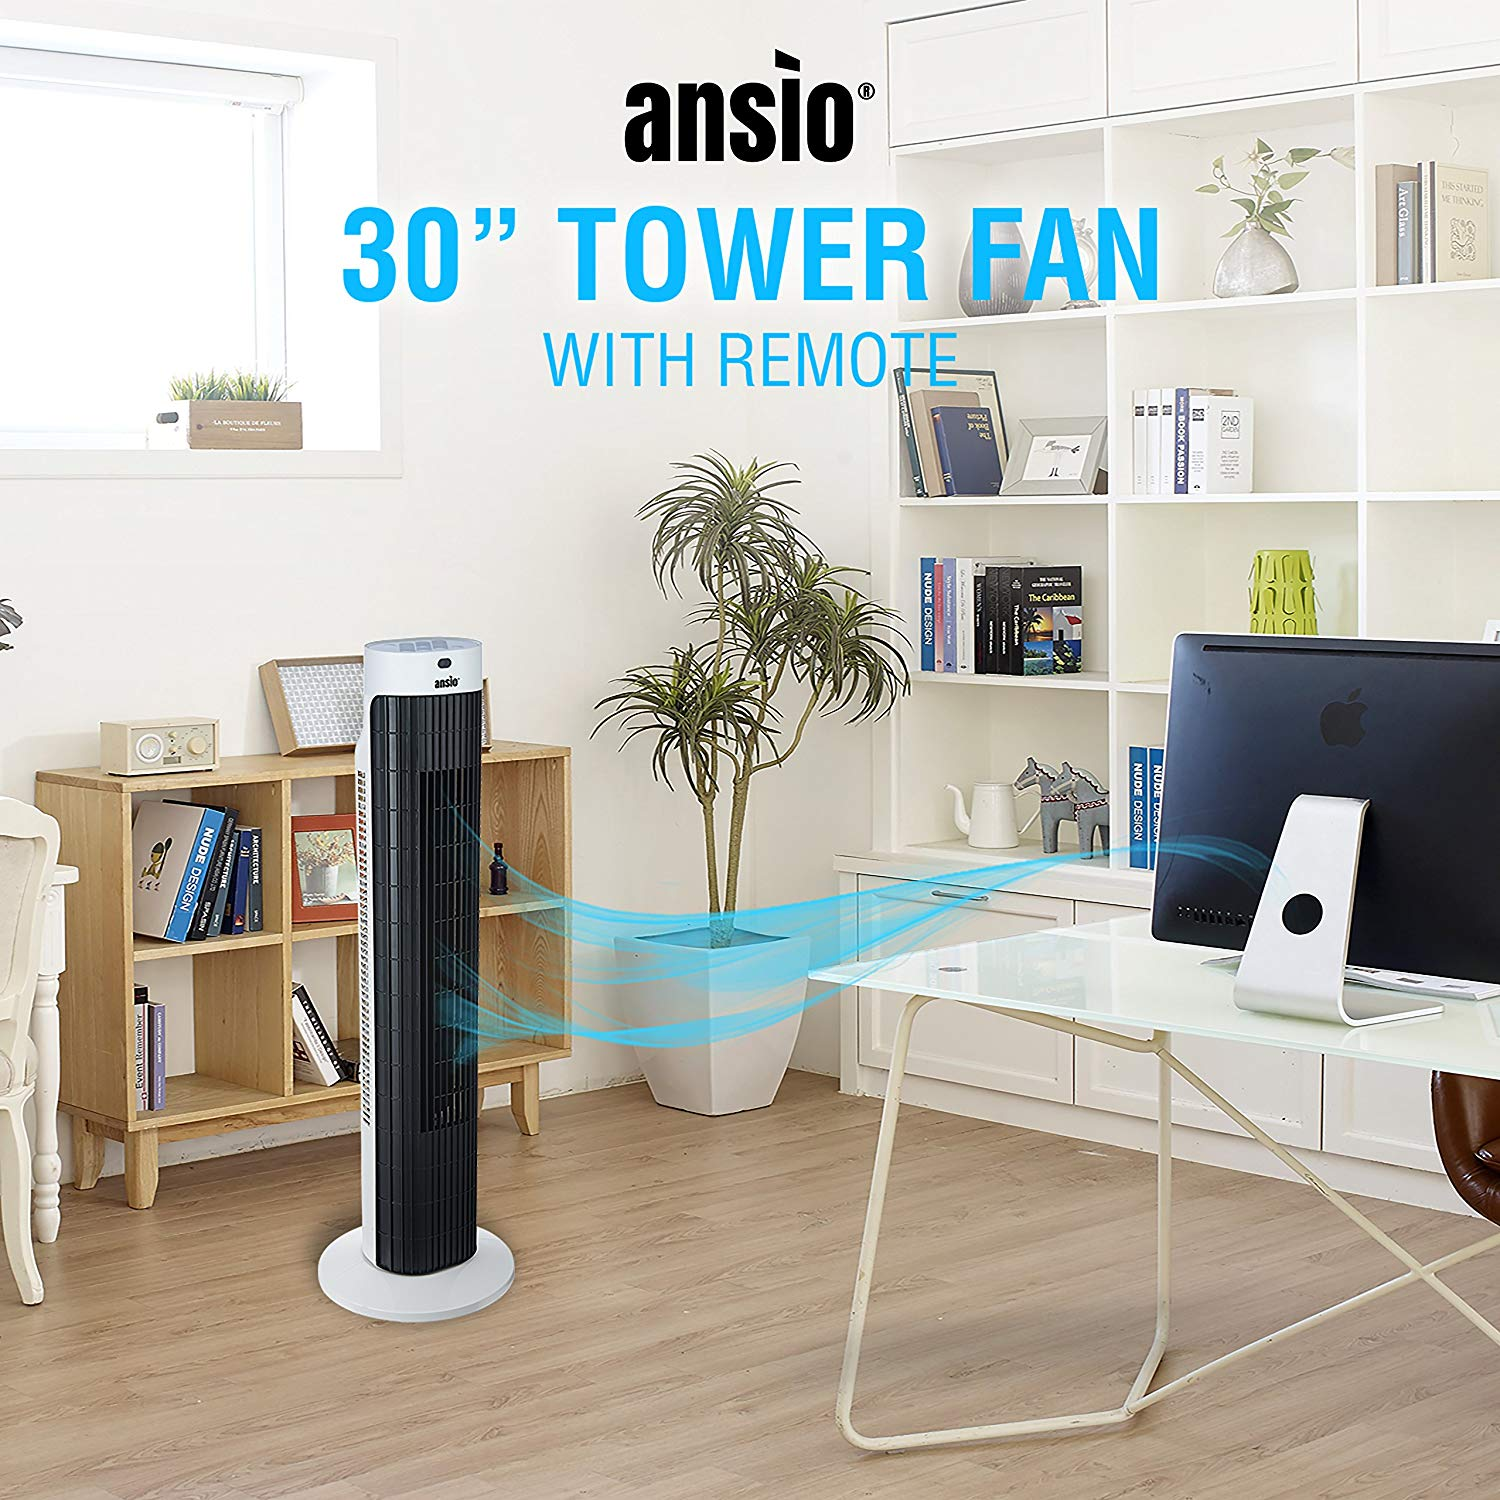 ANSIO Tower Fan 30-inch with Remote For Home and Office